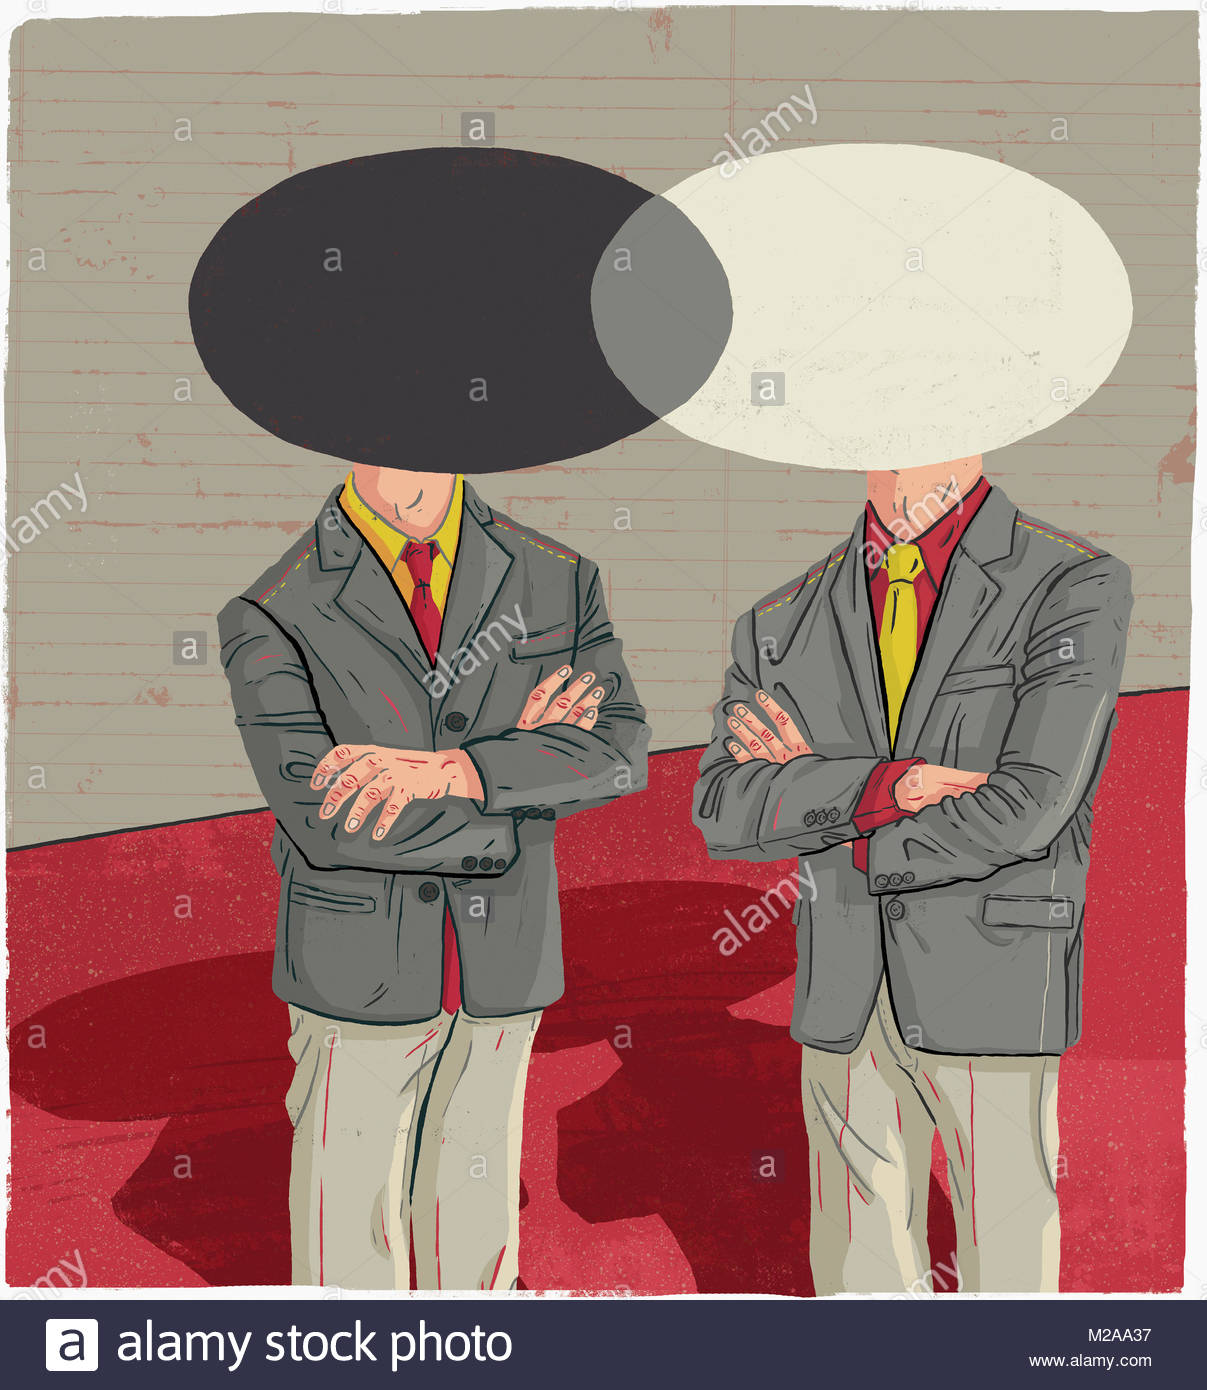 Venn diagram stock photos venn diagram stock images alamy two businessmen with overlapping venn diagram heads stock image pooptronica